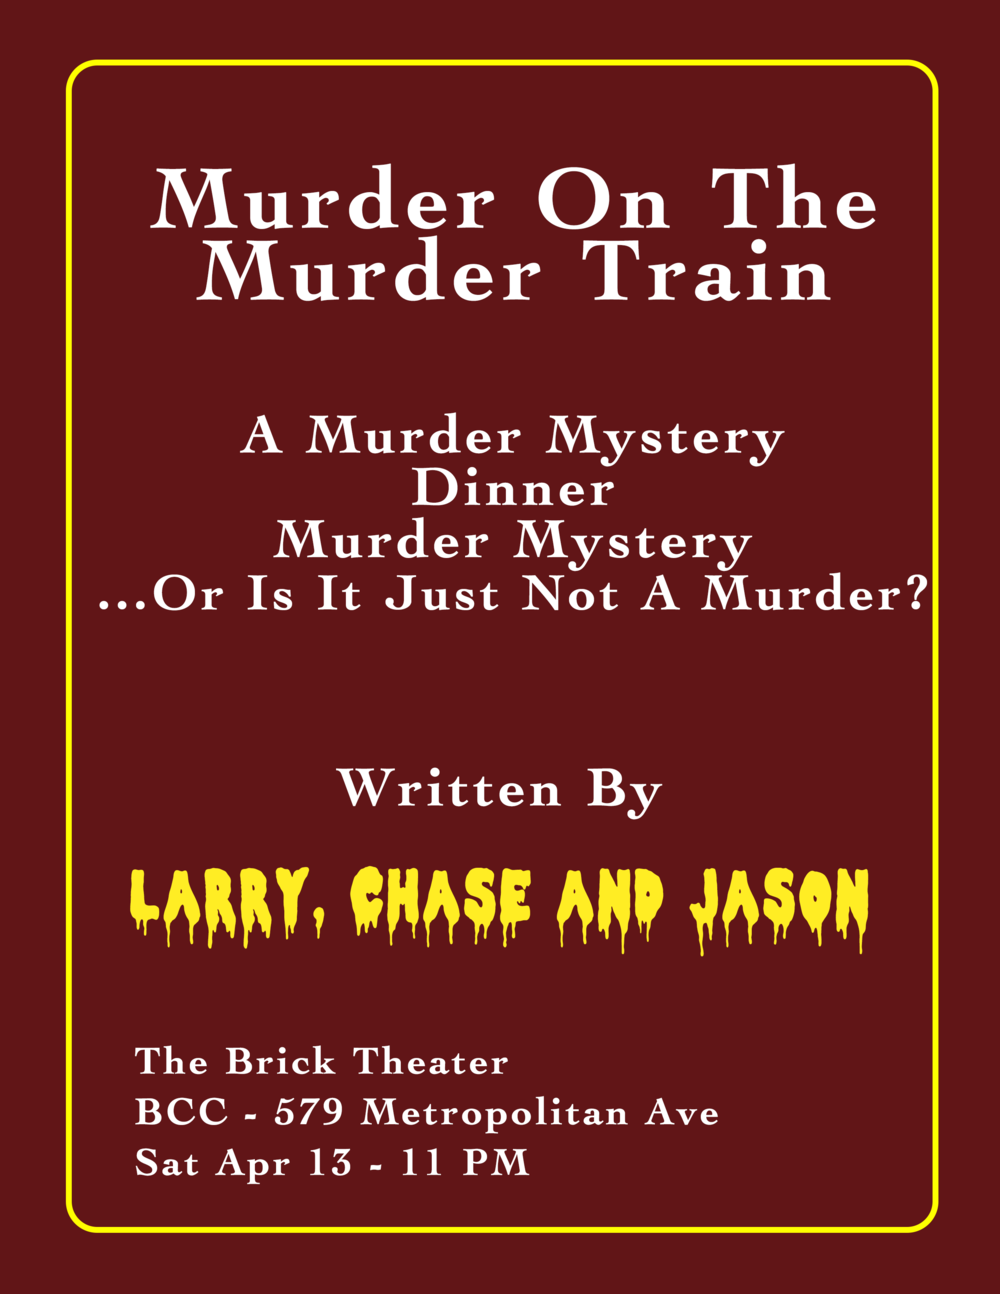 Murder On The Murder Train.png